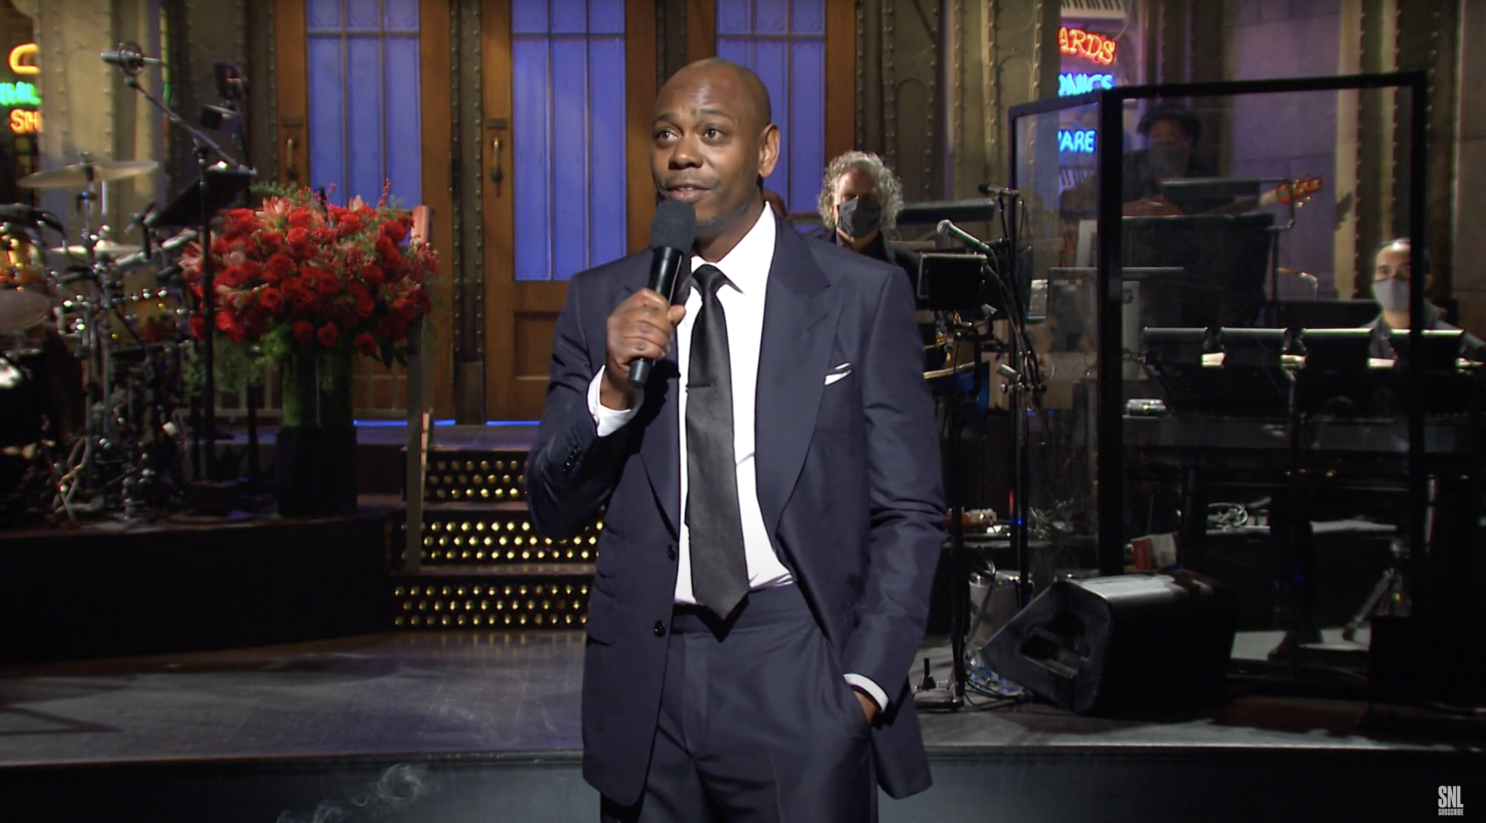 dave chappelle snl post election monologue 2016 vs 2020 los angeles times dave chappelle snl post election